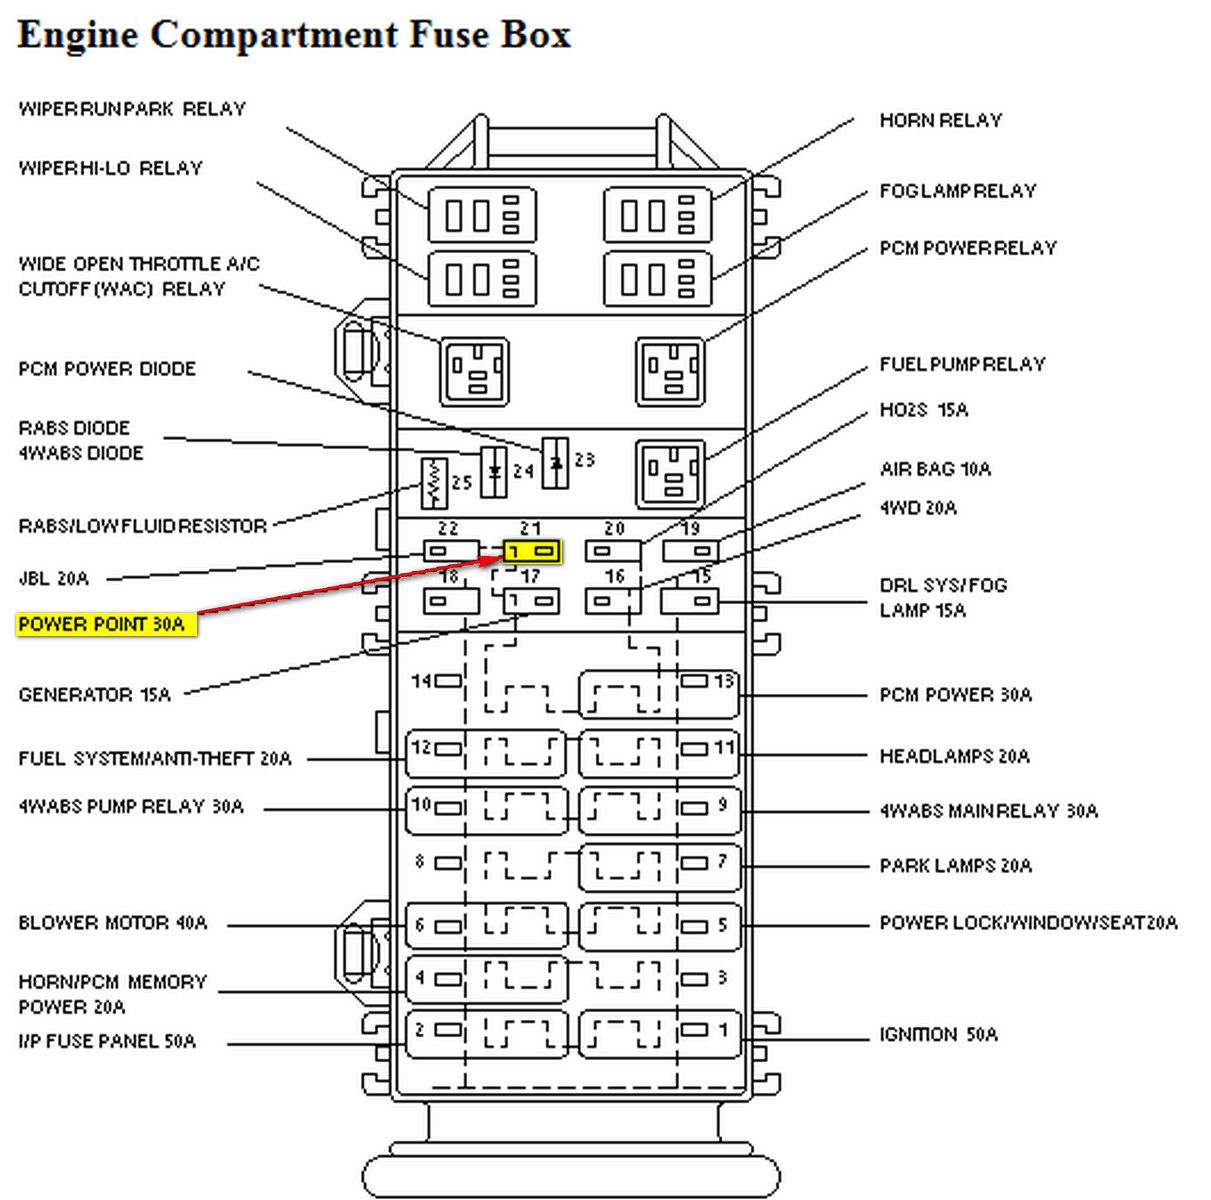 [DIAGRAM_3ER]  341 1997 Gmc Suburban Fuse Box Diagram | Wiring Resources | 1997 Gmc Jimmy Fuse Box Diagram |  | Wiring Resources